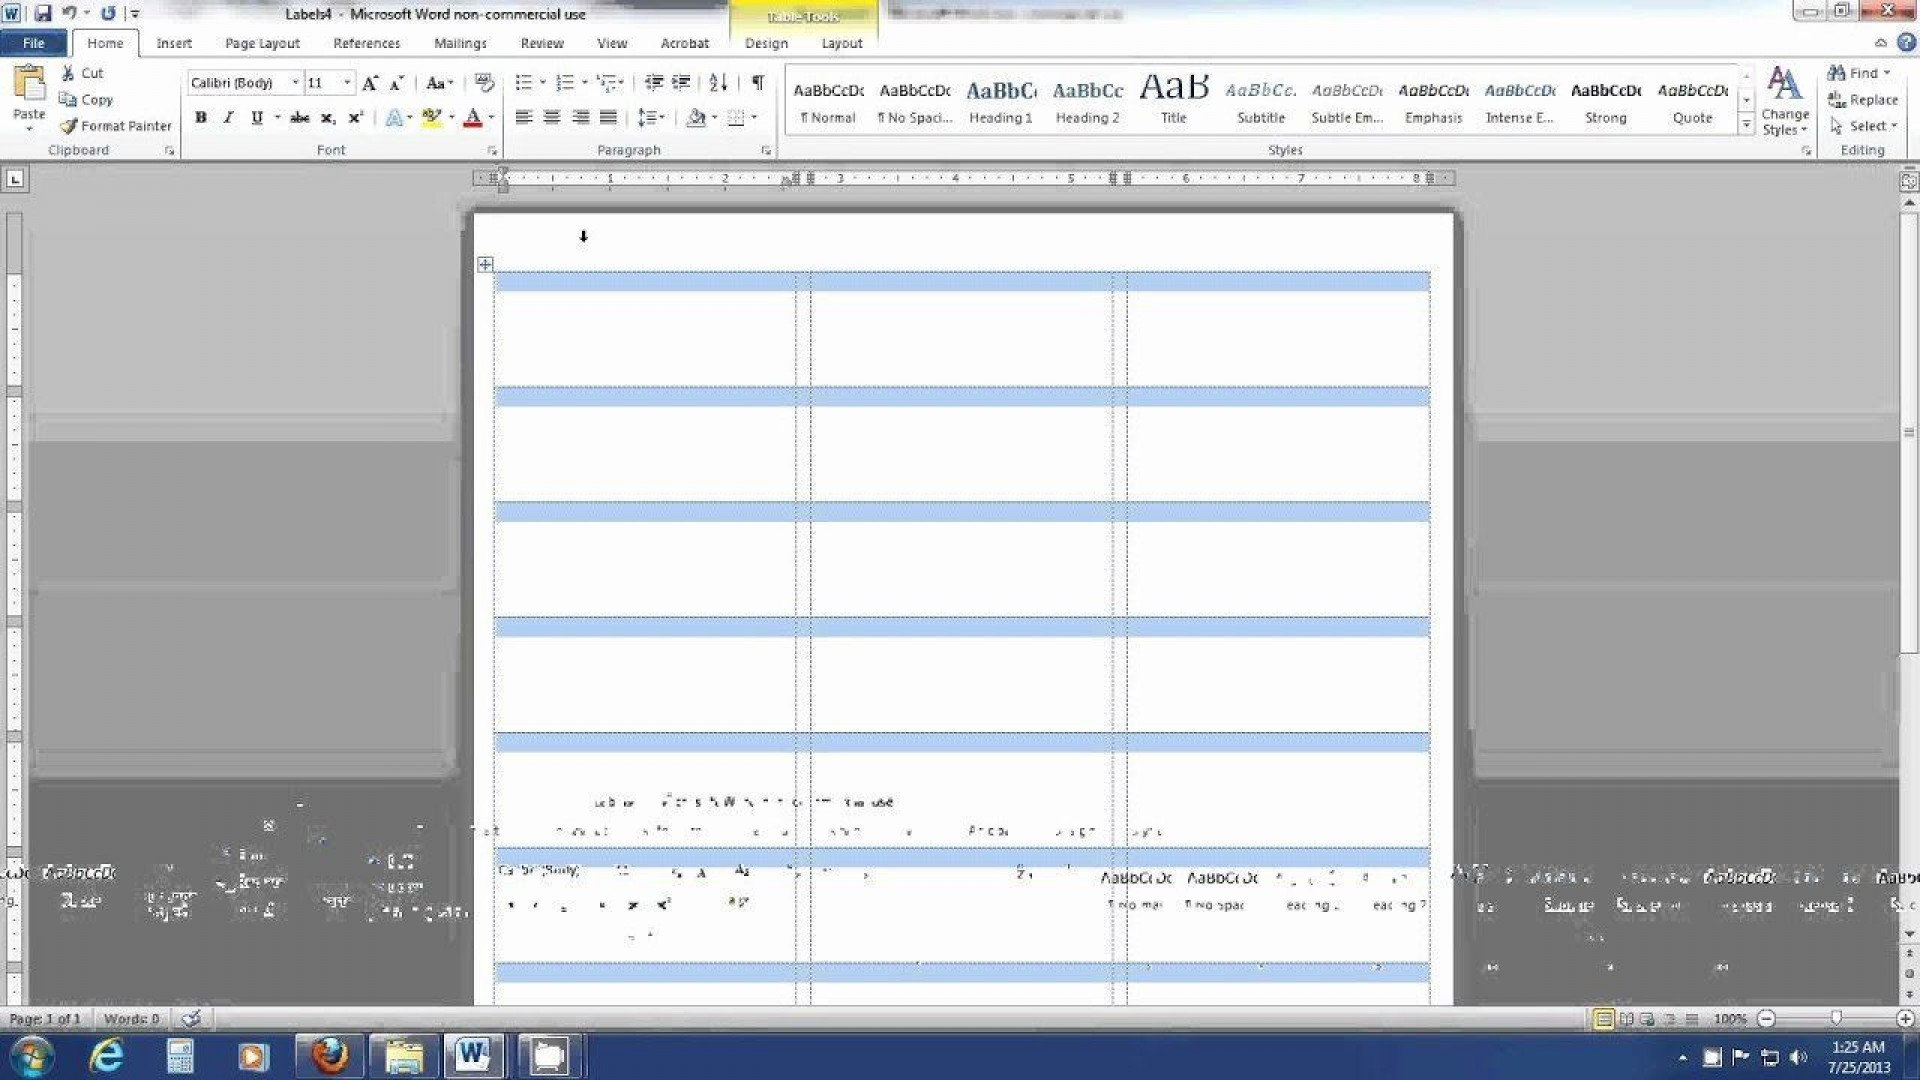 007 Astounding Label Template In Word 2013 Highest Clarity  Cd How To Create A1920